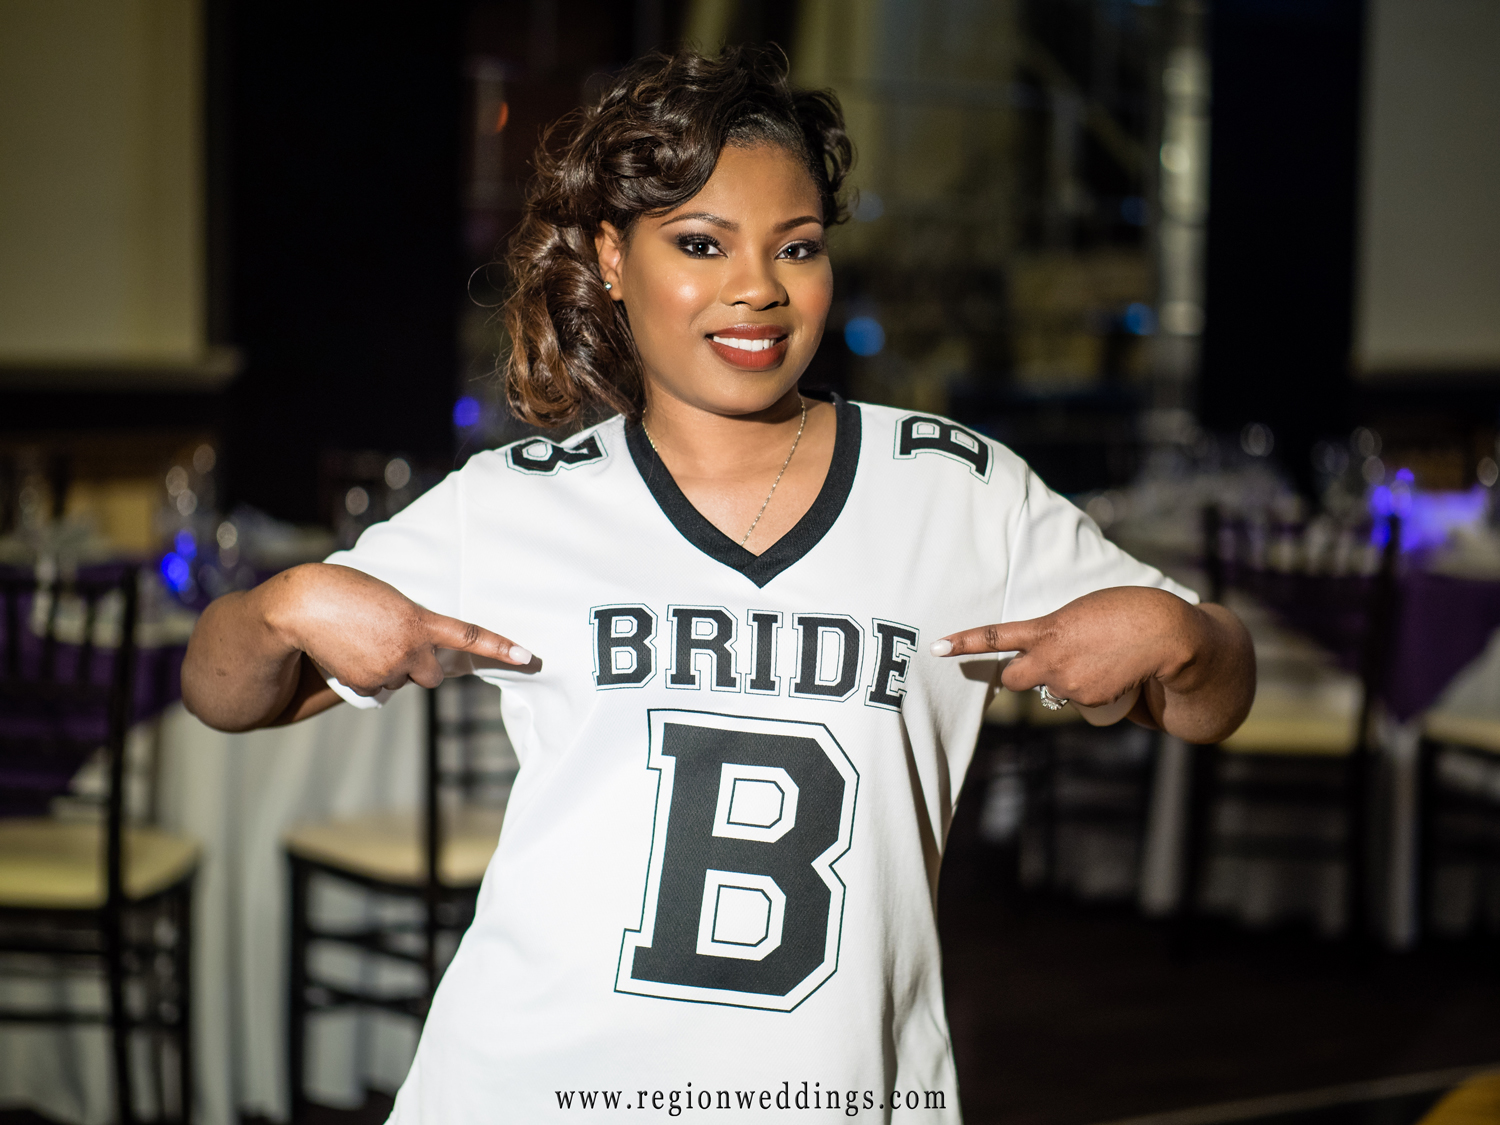 """The bride shows off her """"bride jersey"""" inside The Allure ballroom."""